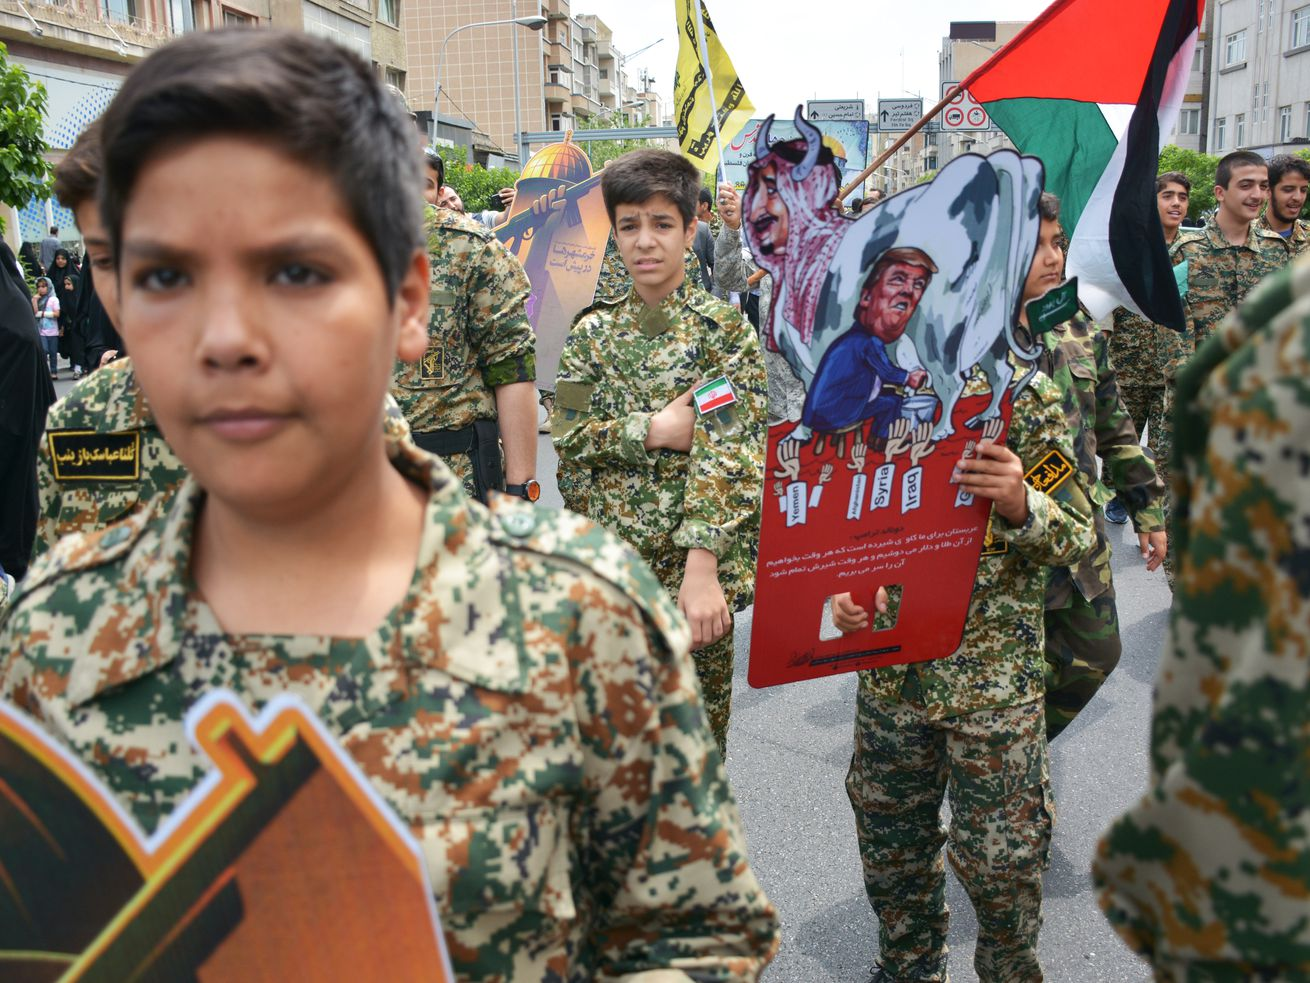 Members of an Iranian paramilitary force rally in Tehran in May.